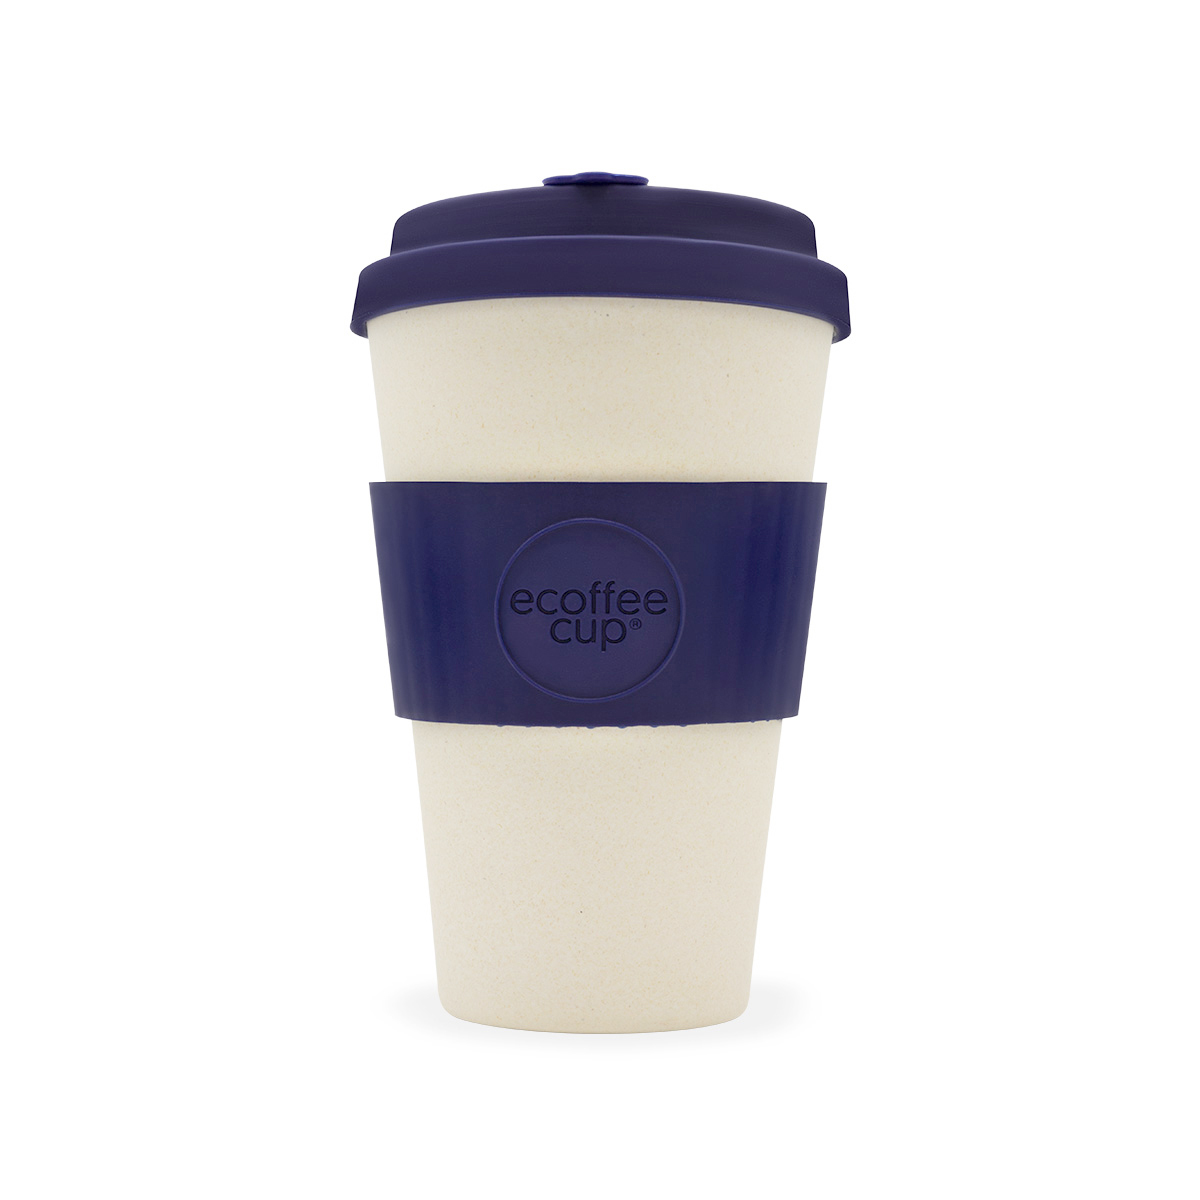 Domestic disposable cups or glasses or lids Ecoffee Eco 14oz Blue Nature Cup Ref 0303029